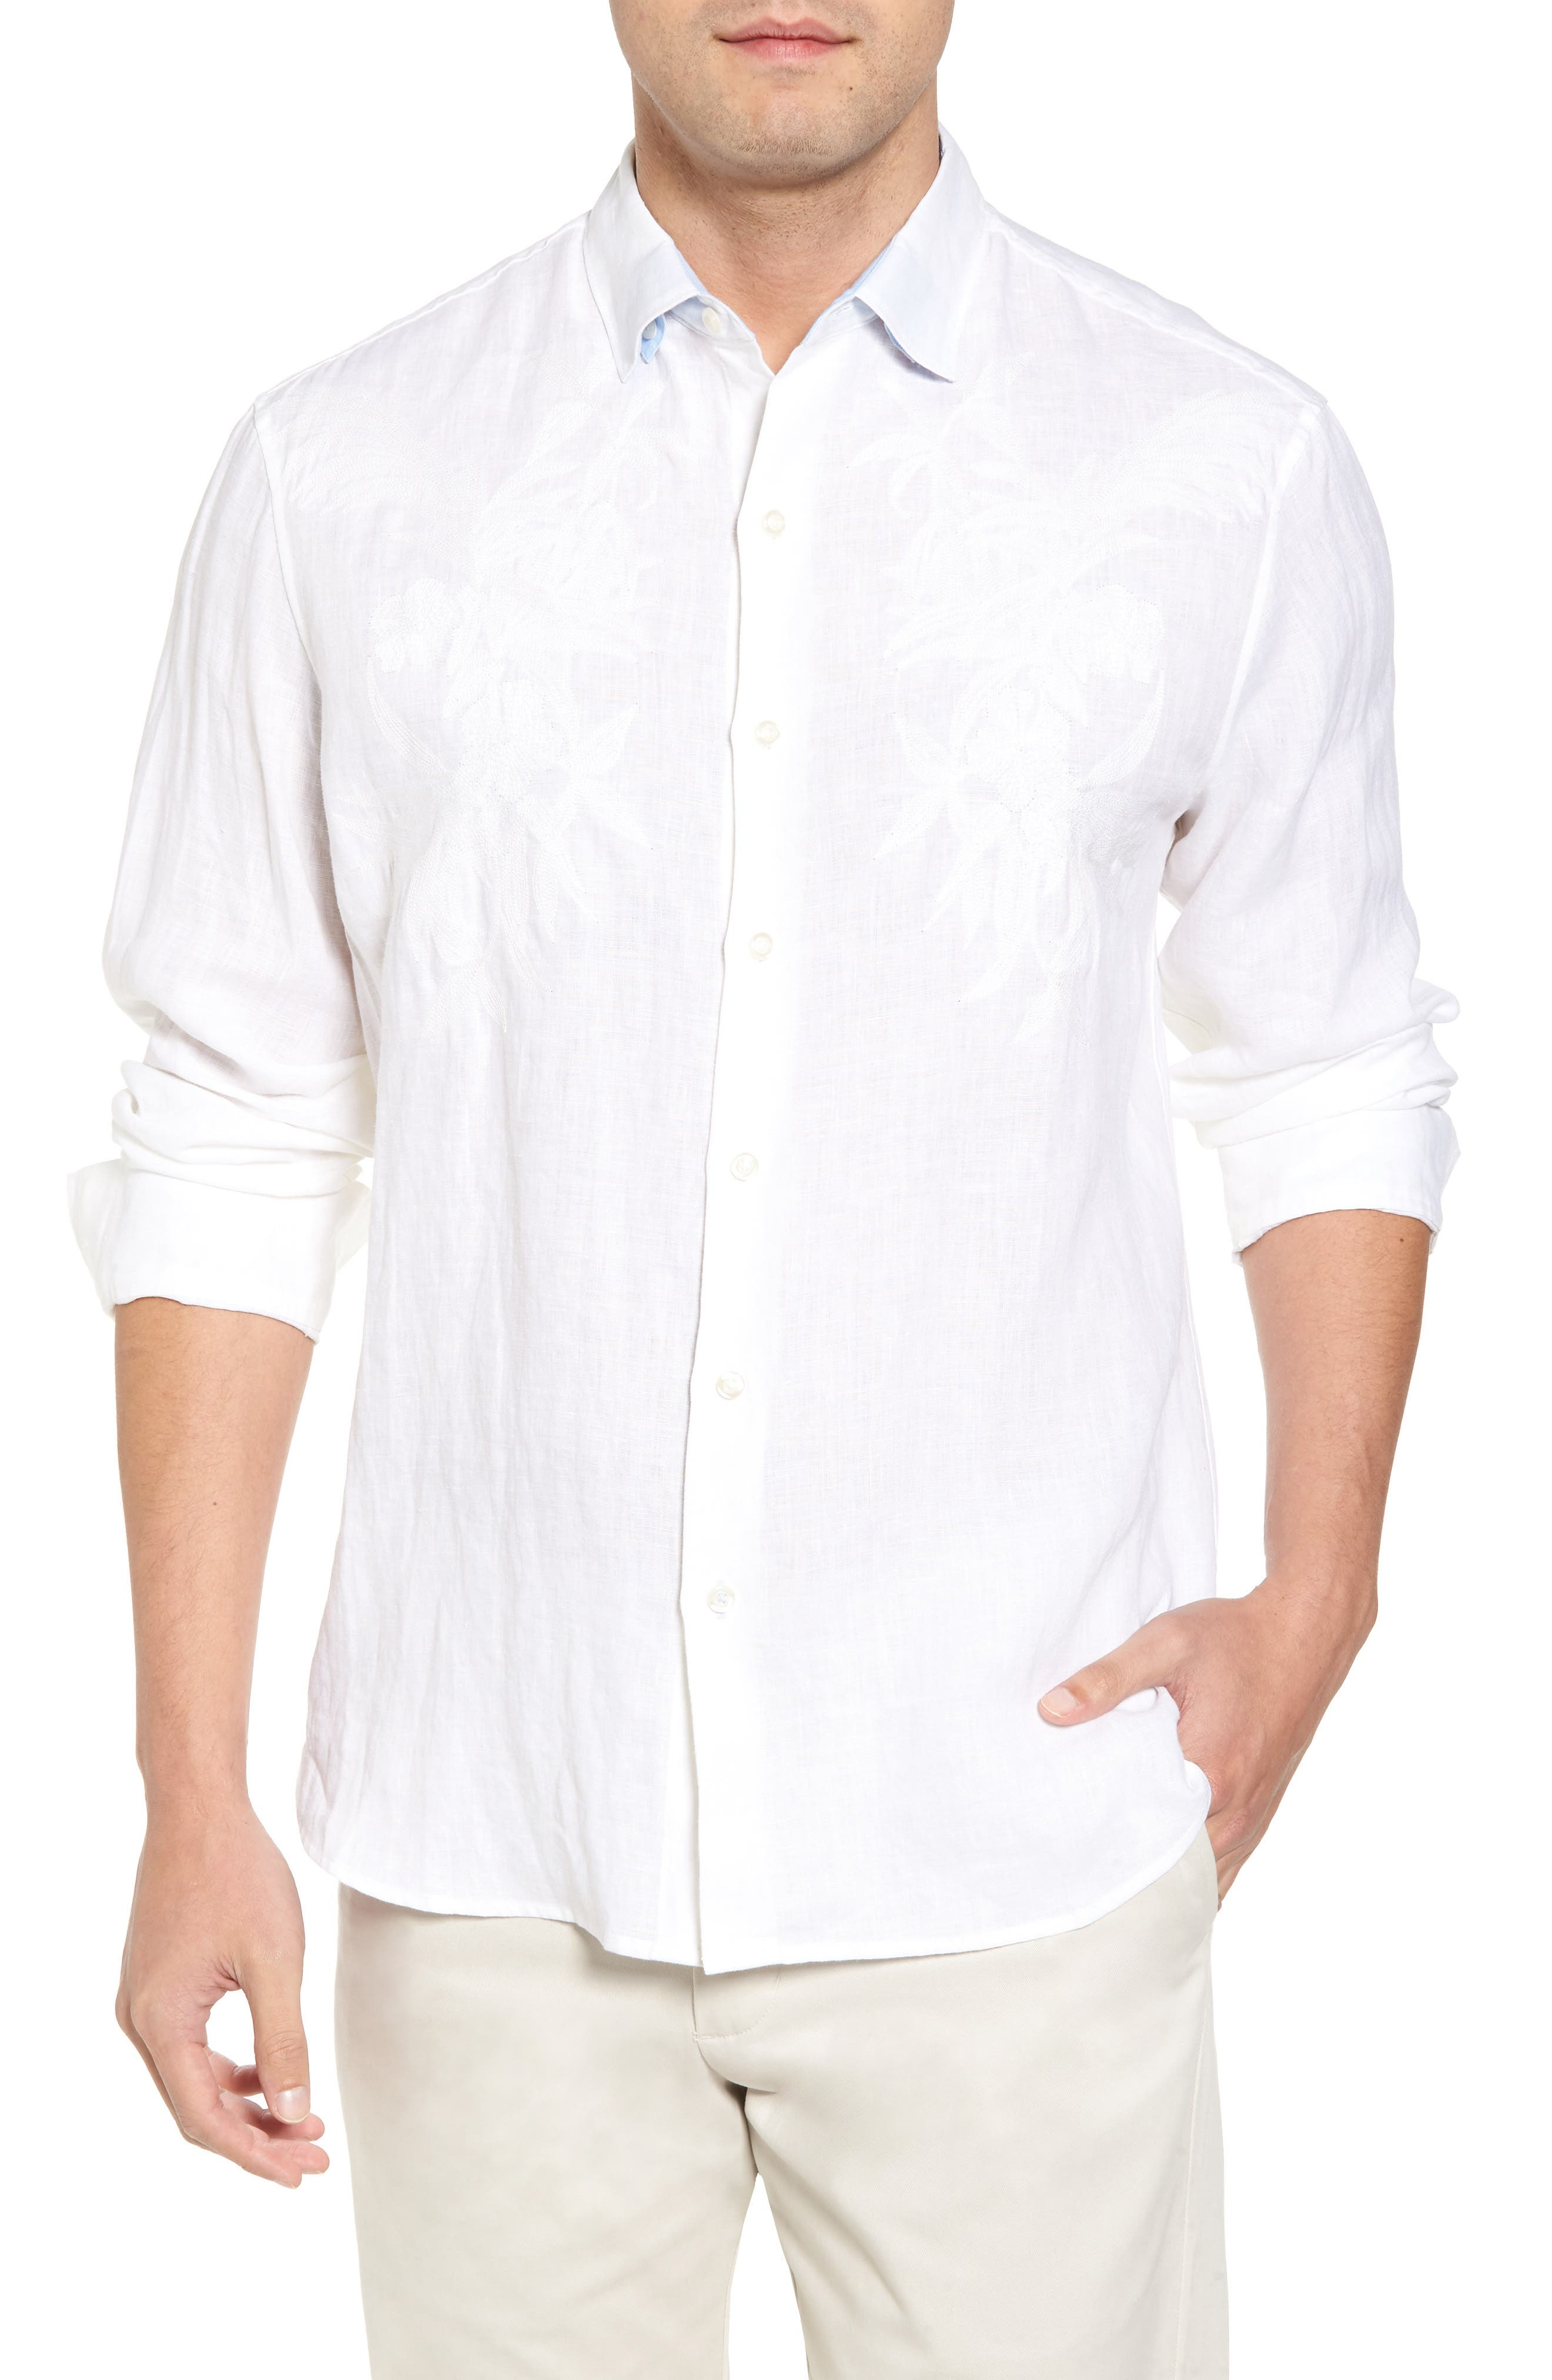 Down the Isle Regular Fit Linen Sport Shirt,                             Main thumbnail 1, color,                             100